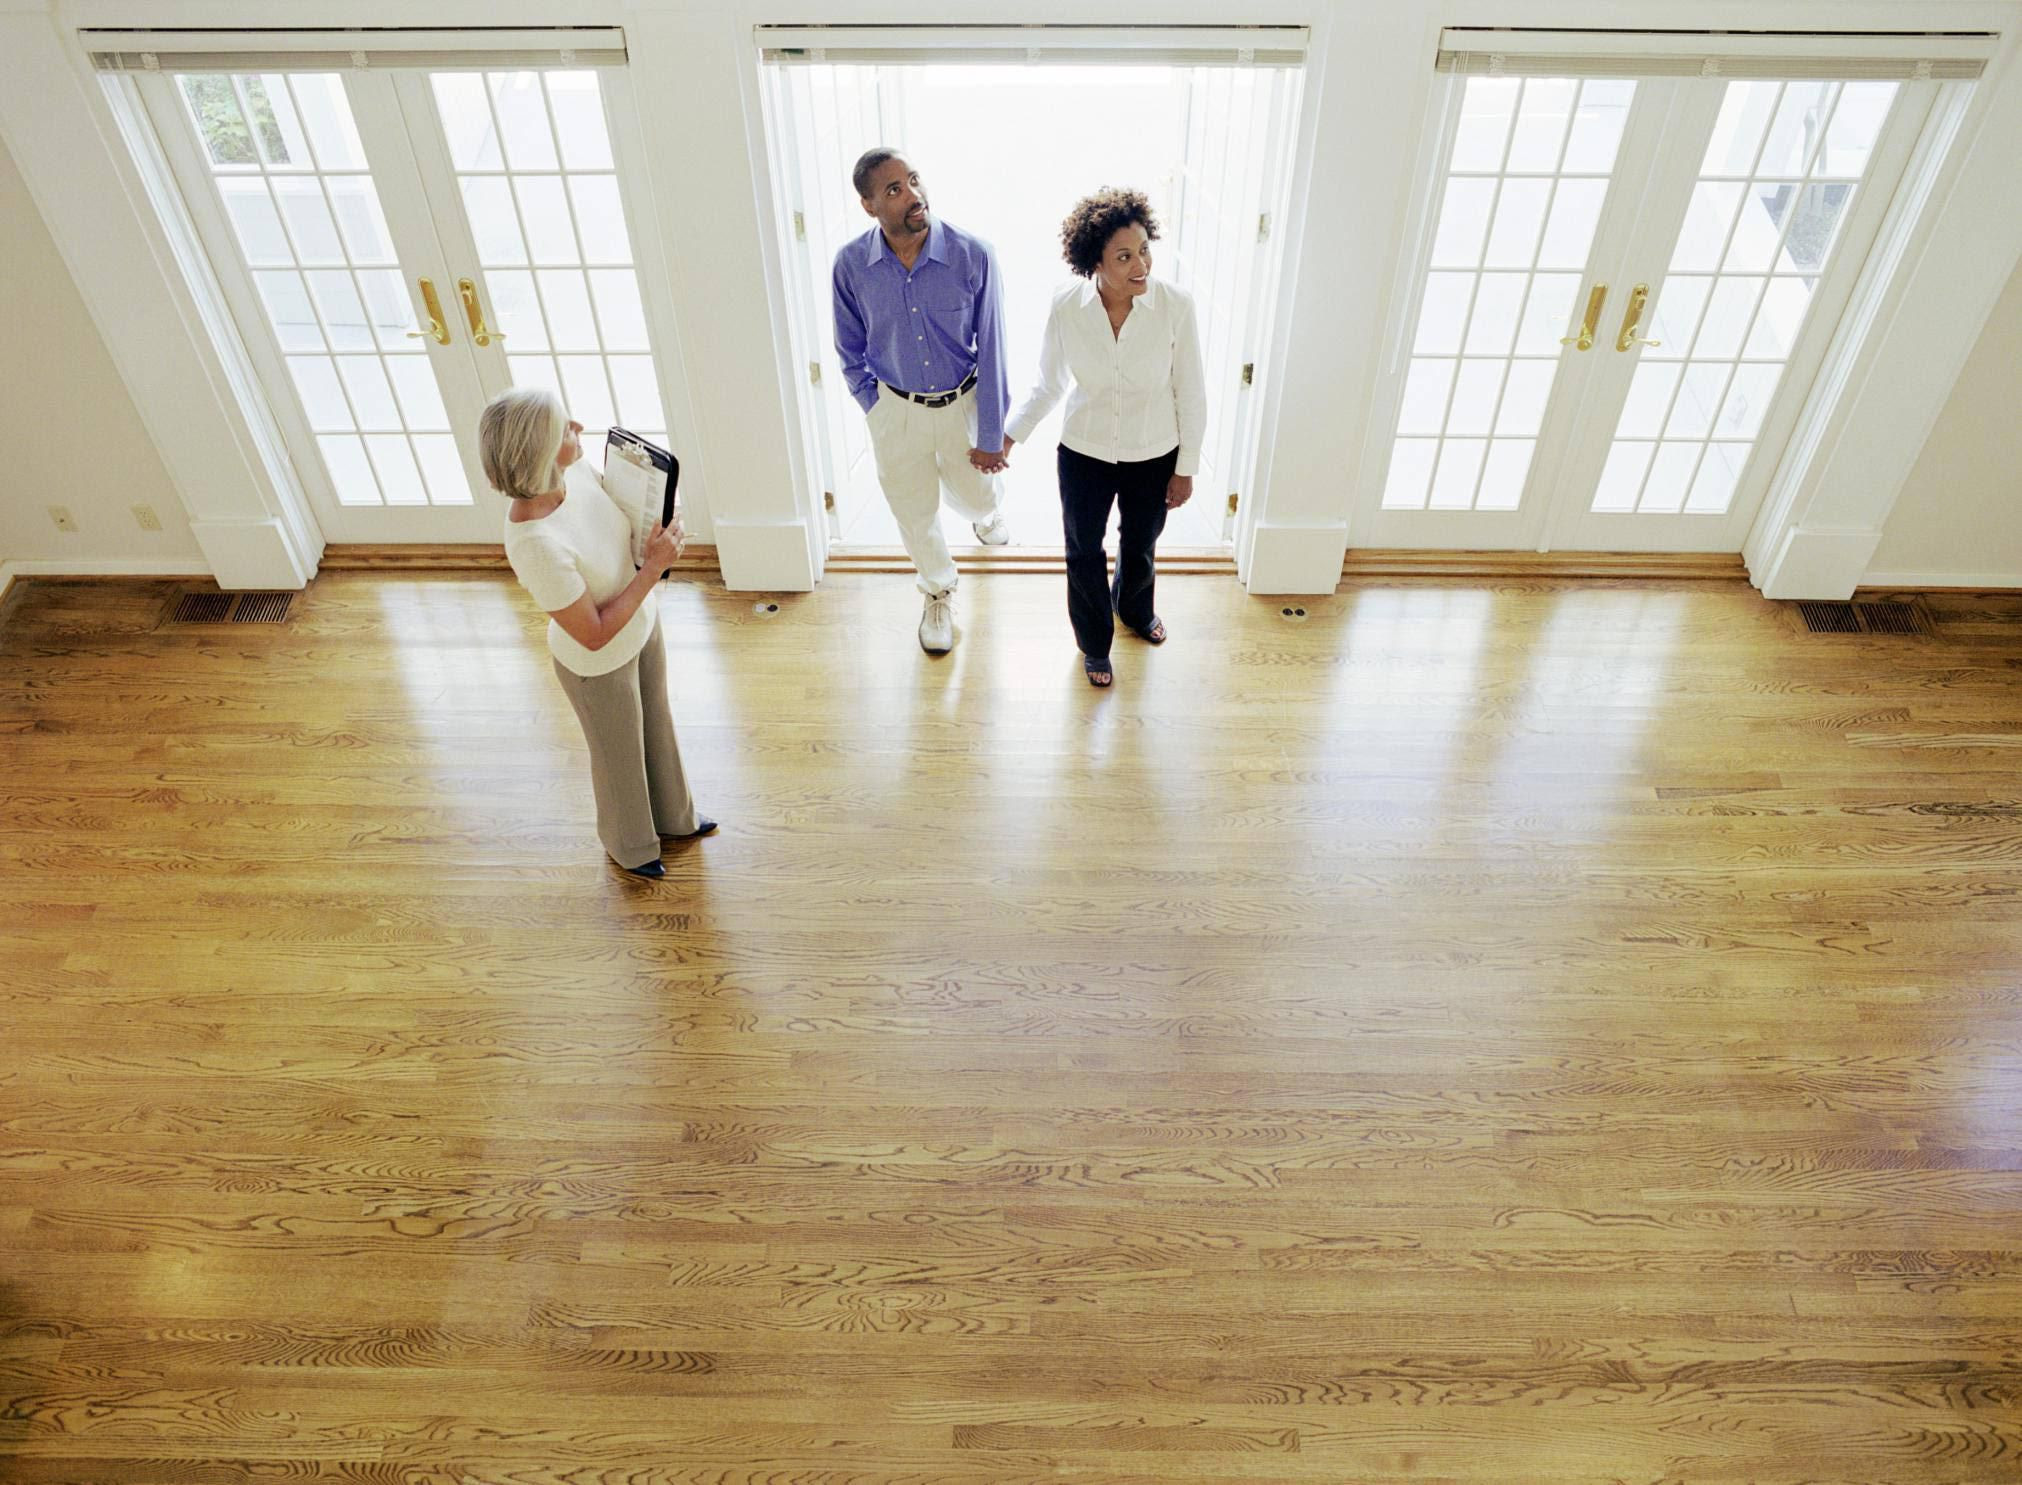 hardwood floors plus more sacramento of before buying a short sale home with 200068250 001 56a493df5f9b58b7d0d7a511